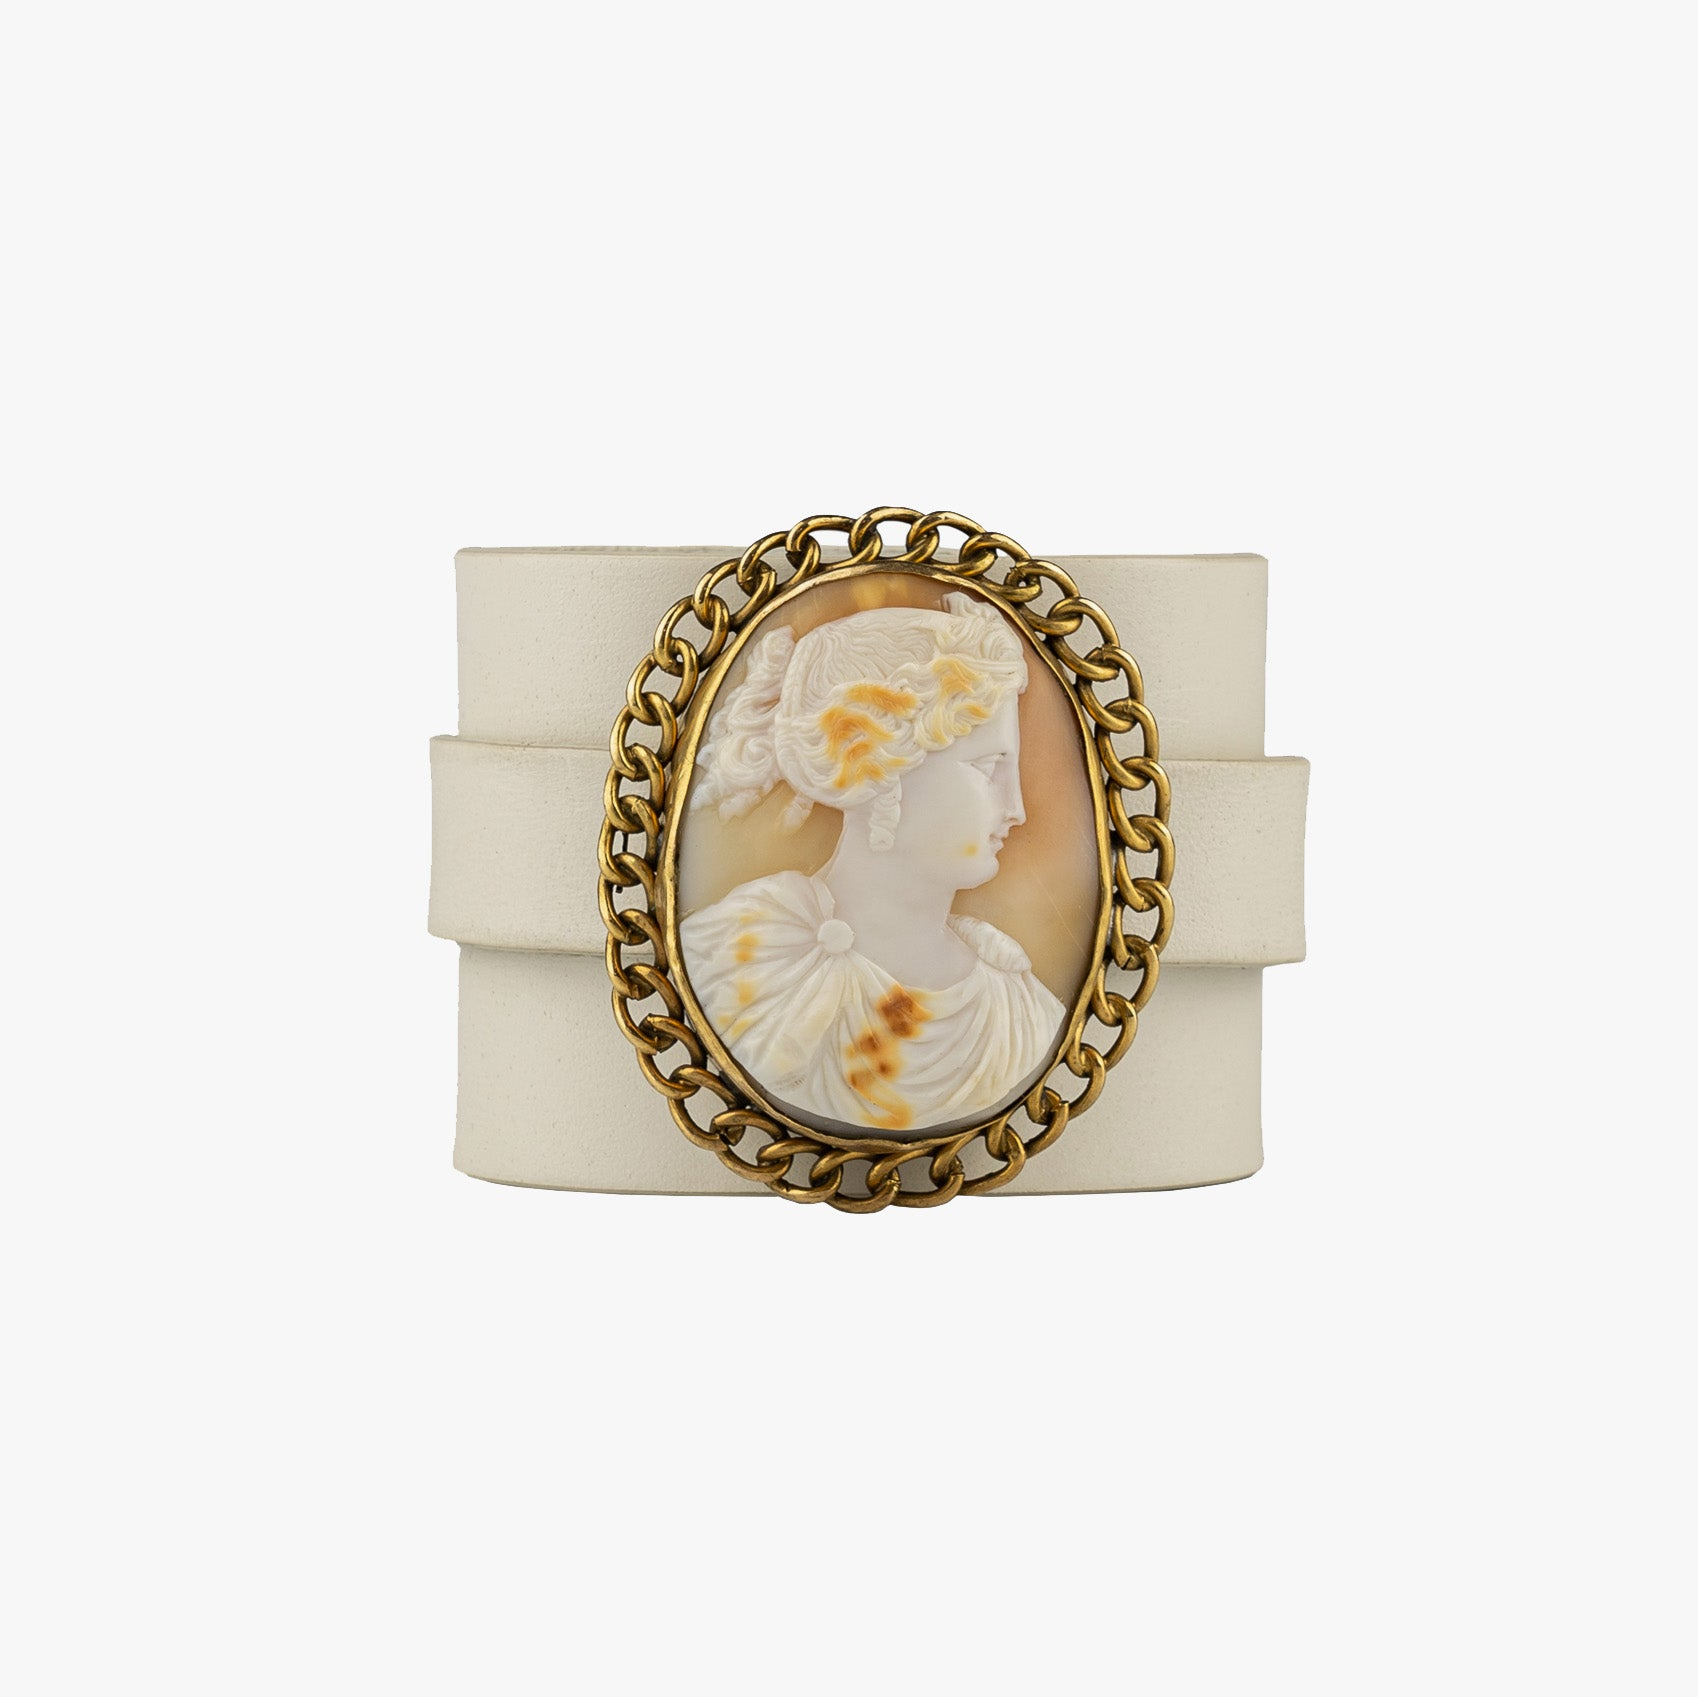 Portrait of a Greek Woman Cameo Bracelet